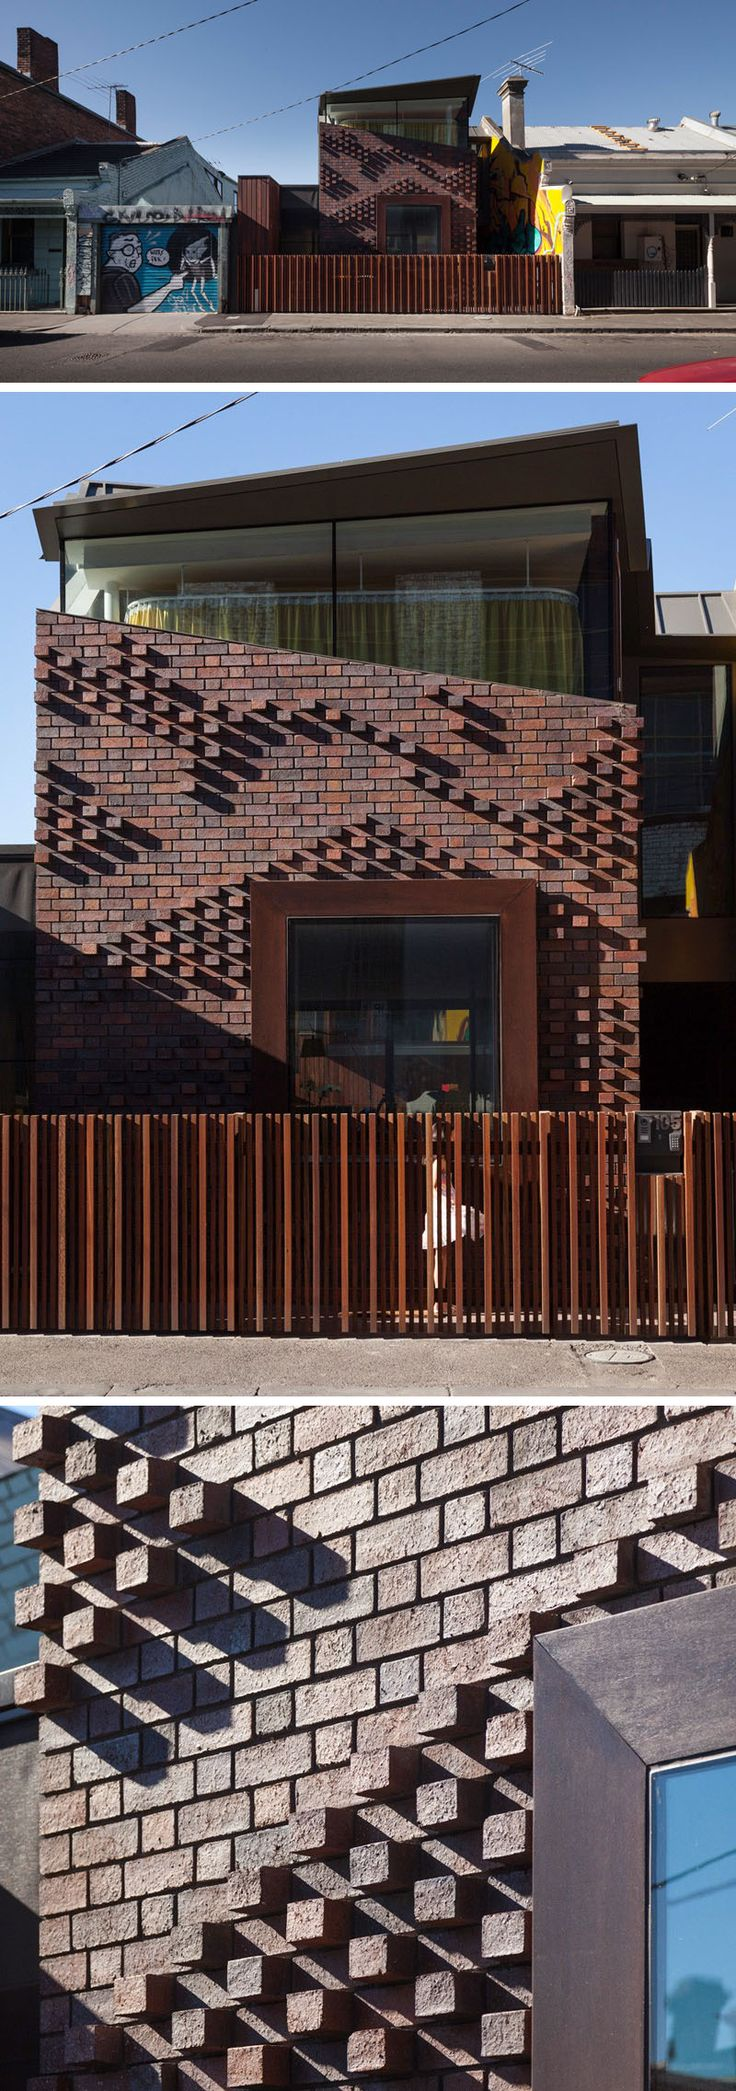 14 Modern Houses Made Of Brick // A unique arrangement of bricks on this house give it a unique texture and pattern that changes throughout the day depending on how the sun casts shadows on the protruding bricks.